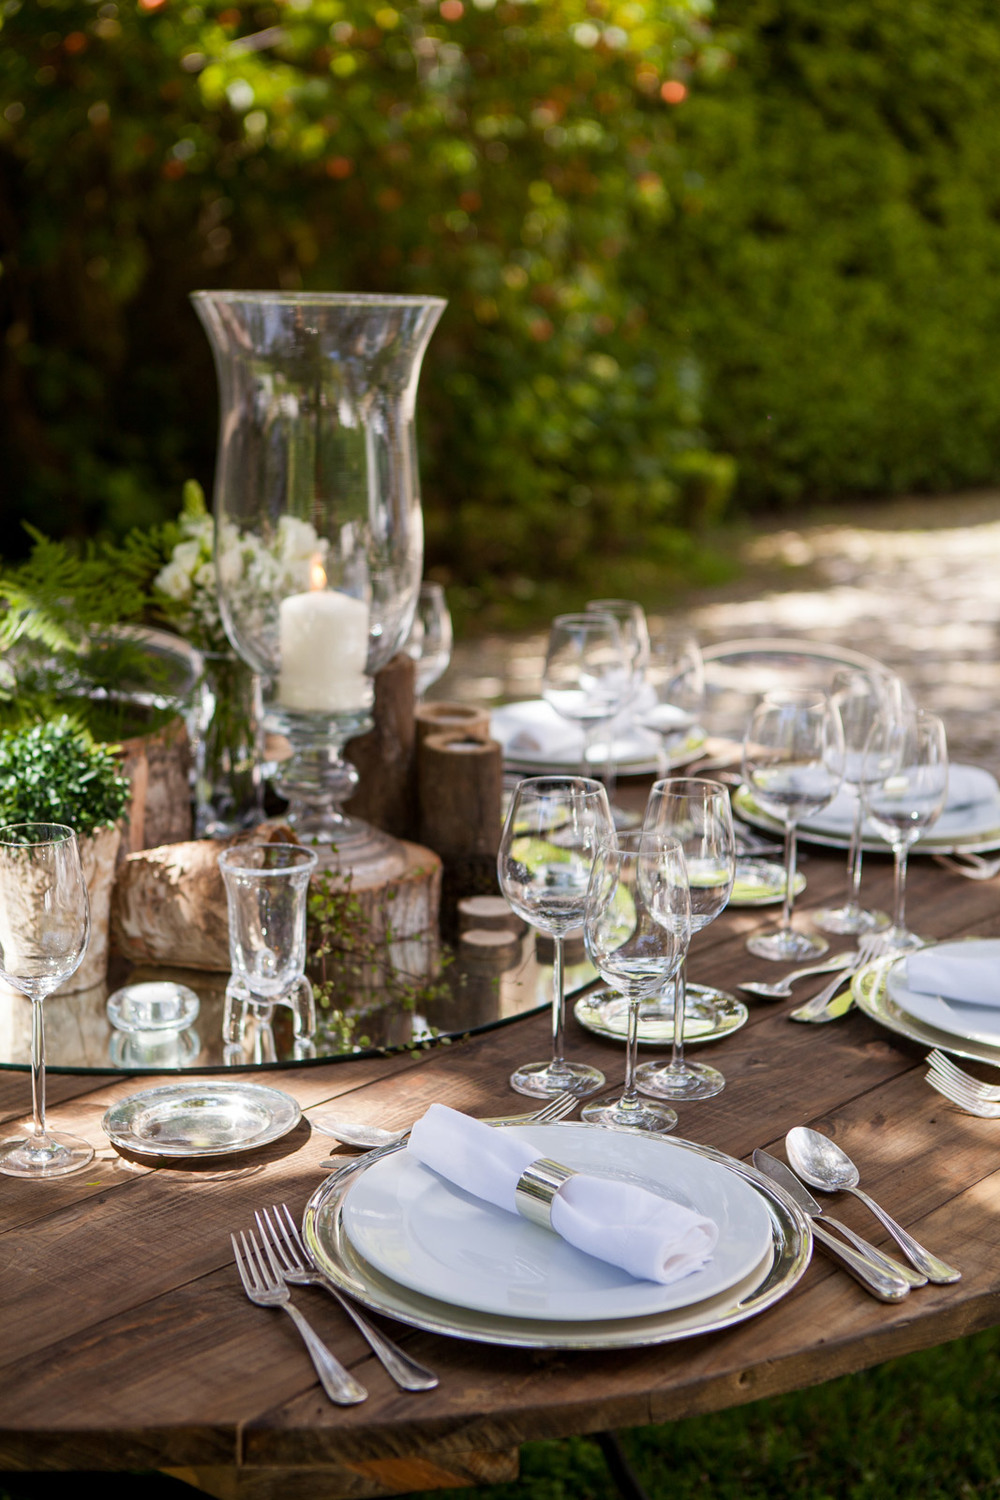 Garden wedding table design by The Wedding Portugal.jpg